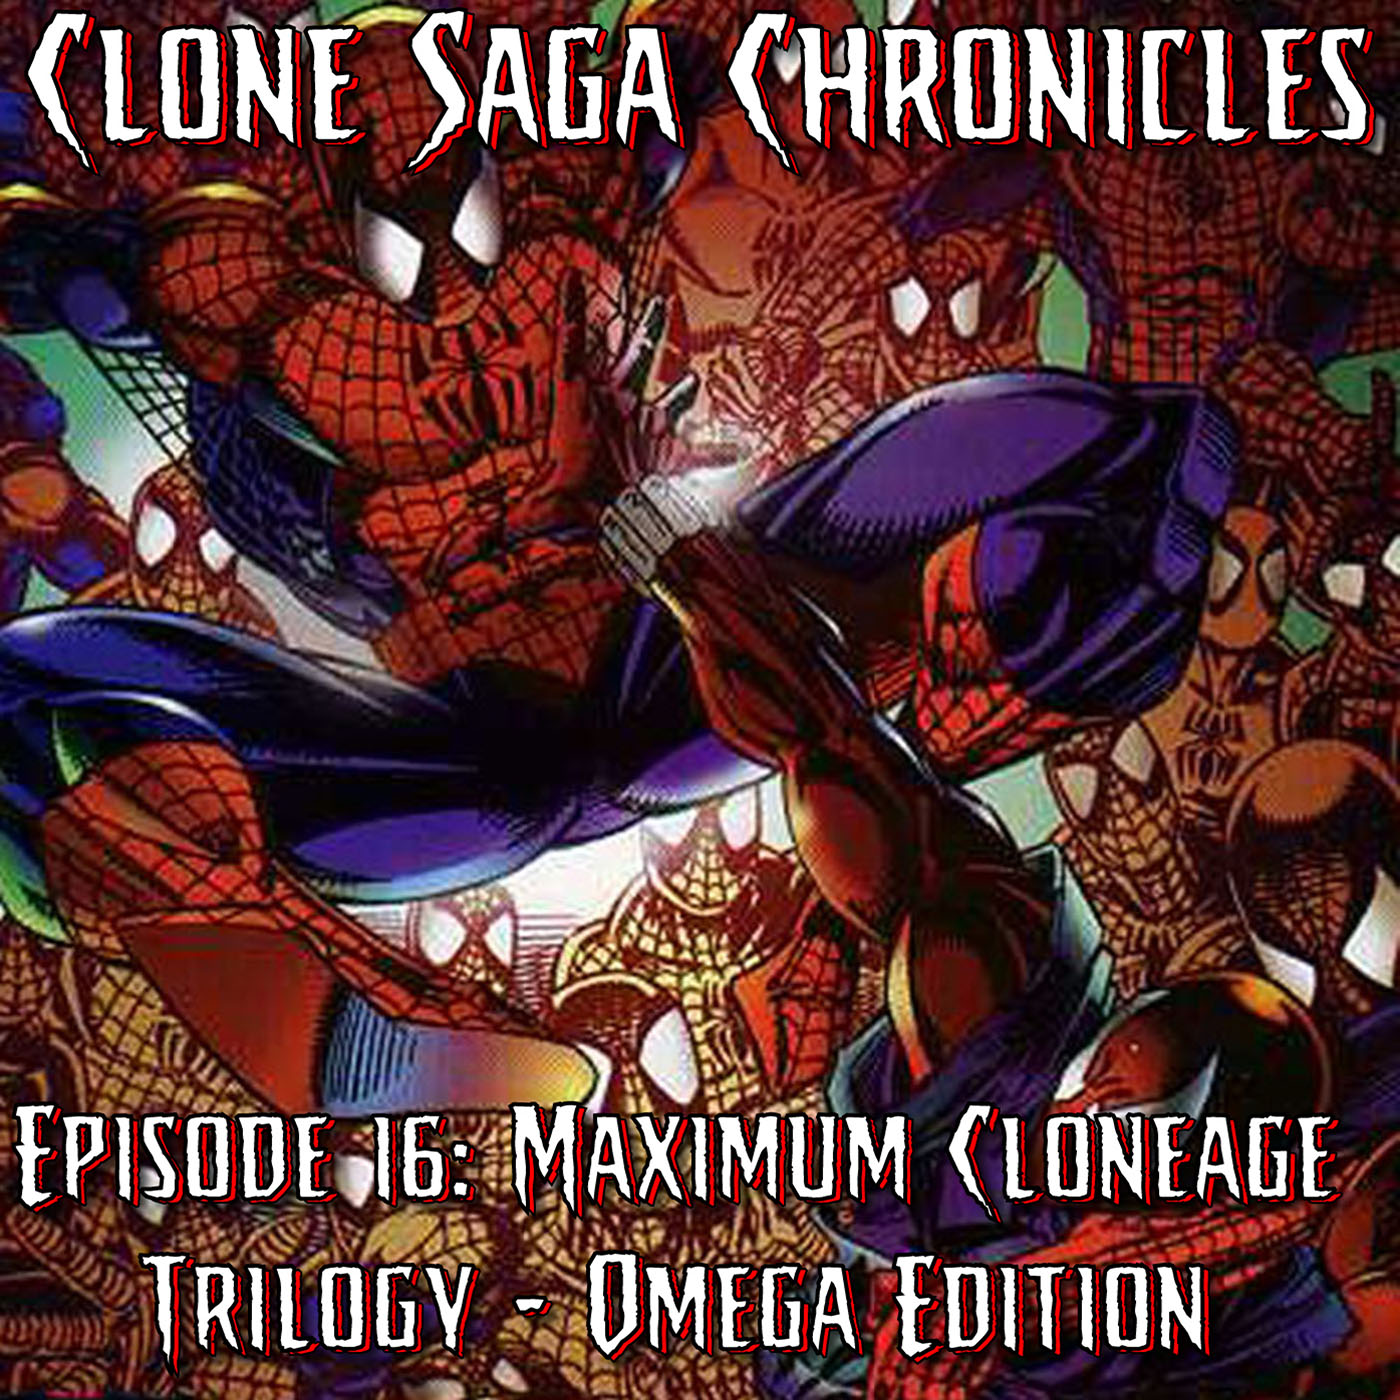 CSC Episode 16: Maximum Clonage Trilogy-Omega Edition (August 1995)